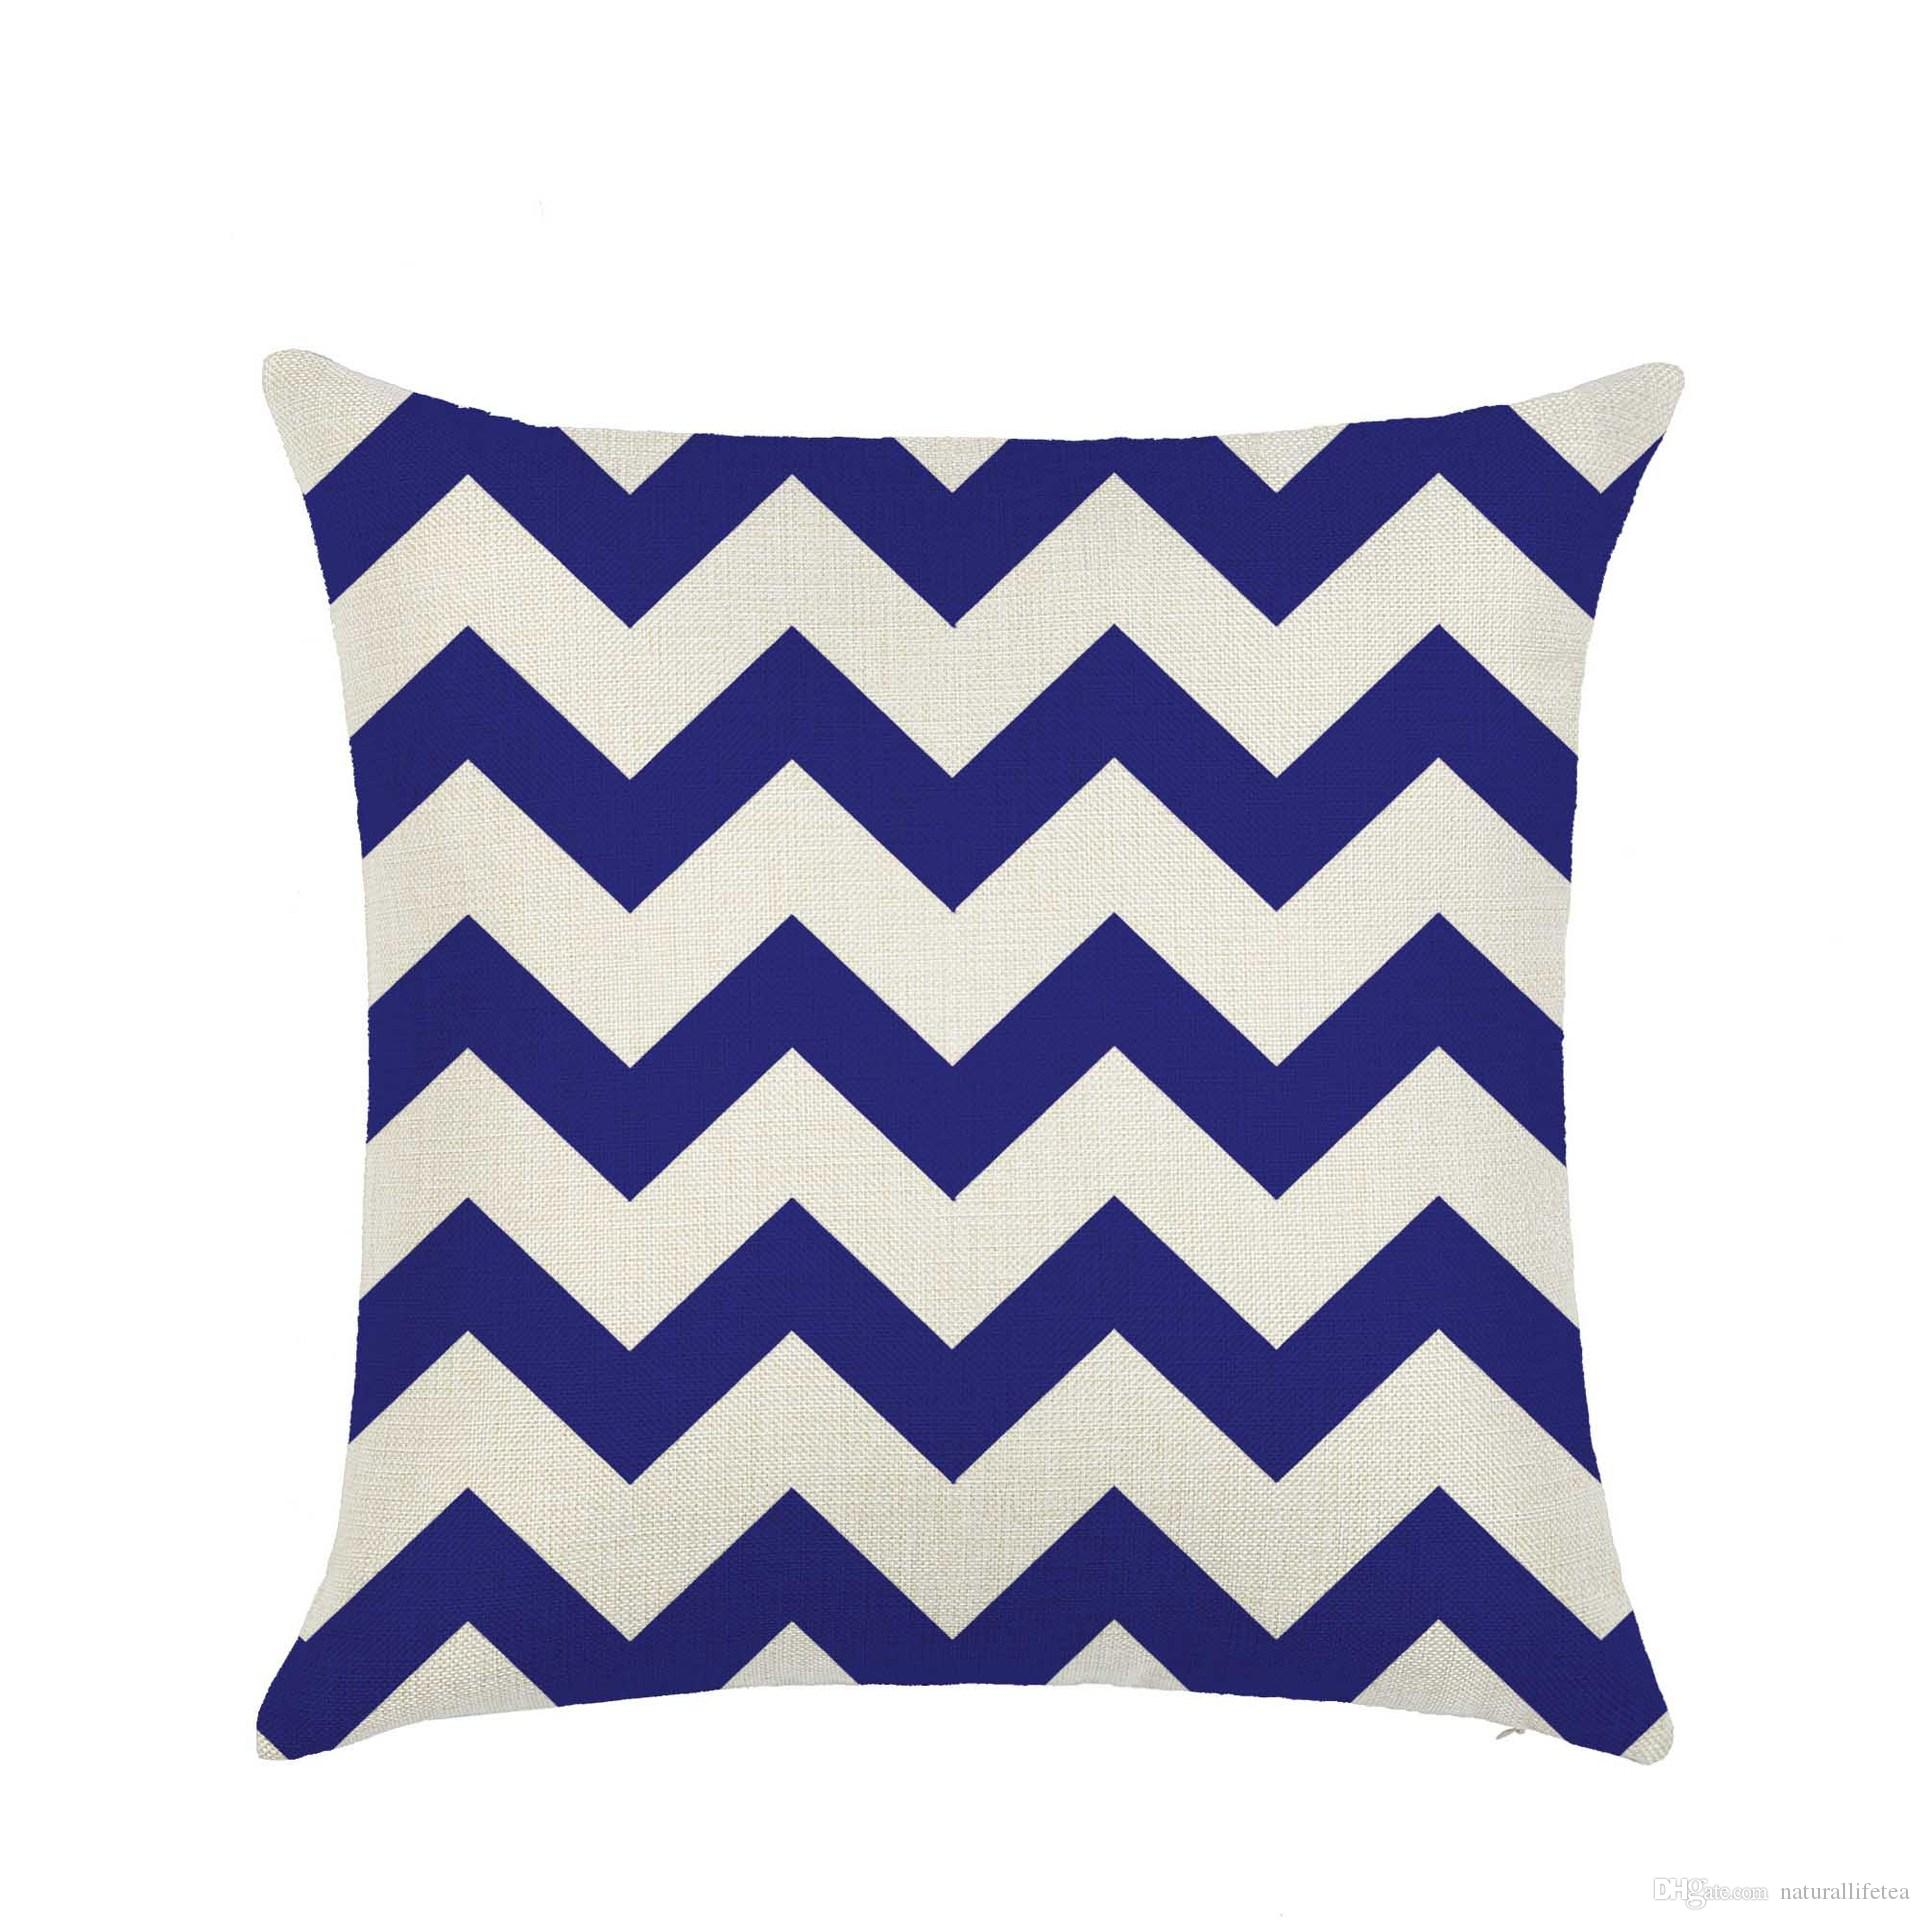 Printing Pillow Cover w/ Nnautic Geometric Wave Pattern 45x45cm Cotton & Linen Pillow case Throw Pillow Cushion Case Home Decorative h-0039